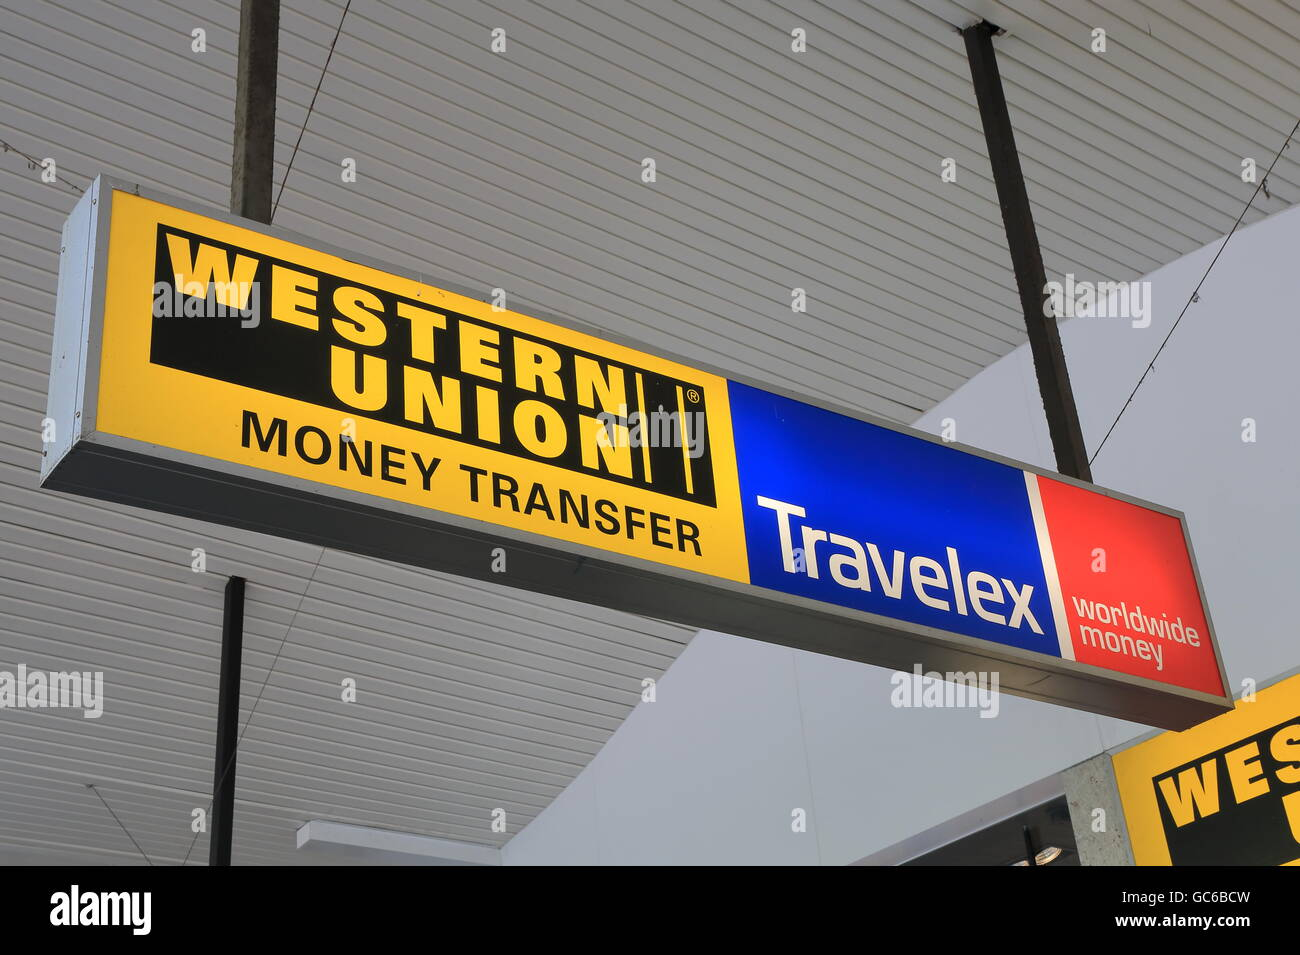 Western Union Currency Exchange Stock Photos & Western Union ...